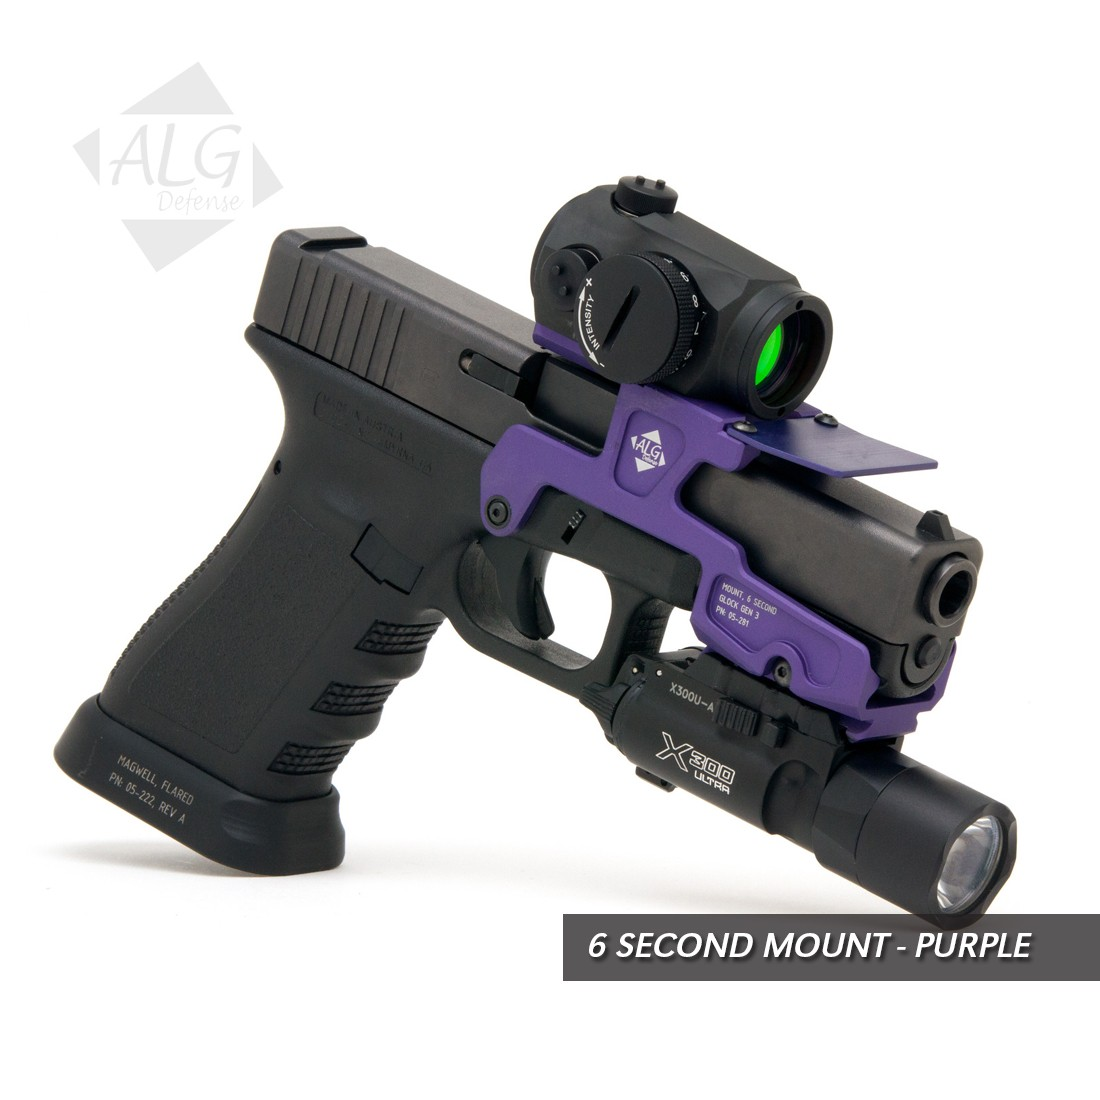 ALG Defense 6 Second Mount for G3 Glock 17, 22, 24, 31, 34, 35